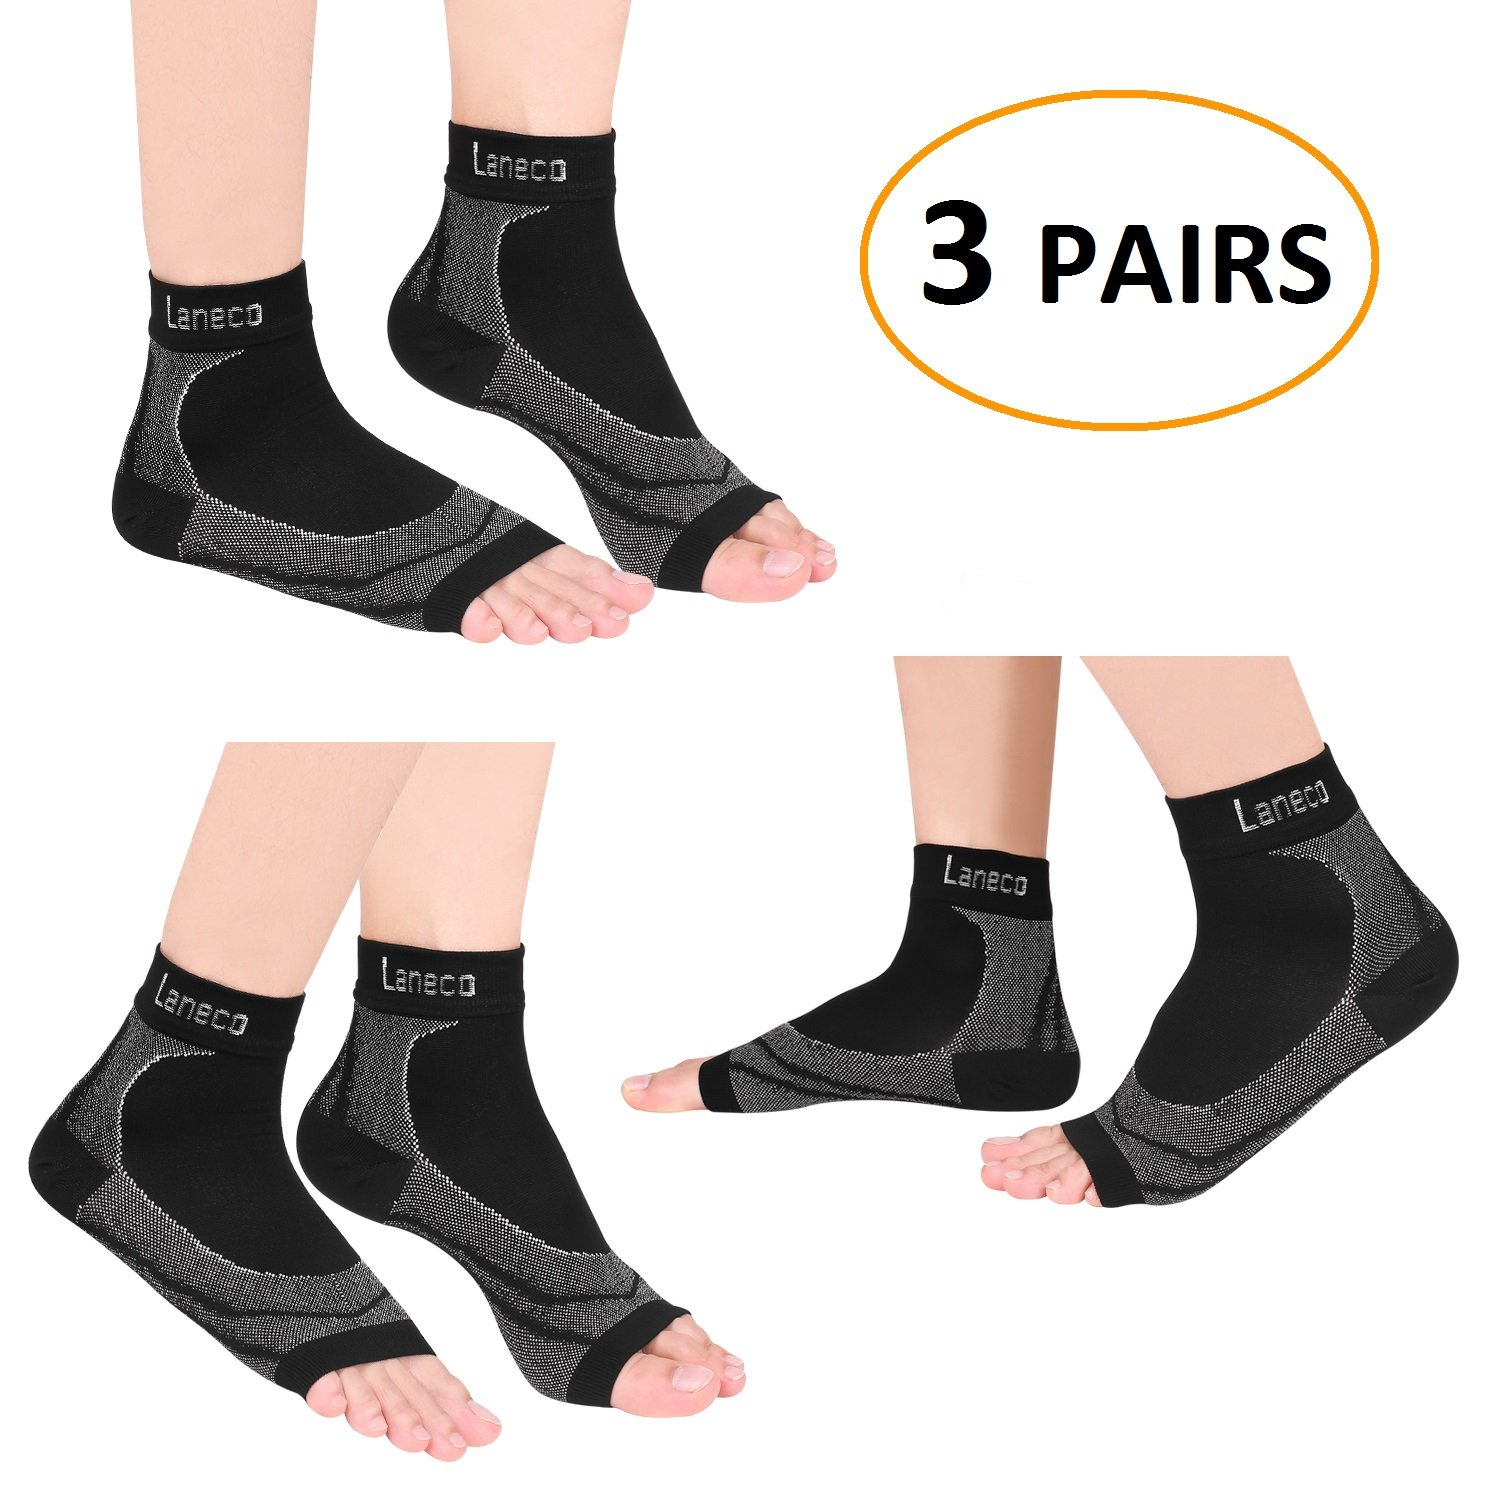 Laneco Plantar Fasciitis Socks (3 Pairs), Compression Foot Sleeves with Heel Arch & Ankle Support, Great Foot Care Compression Sleeve for Men & Women, Increase Blood Circulation, Relieve Arch Pain